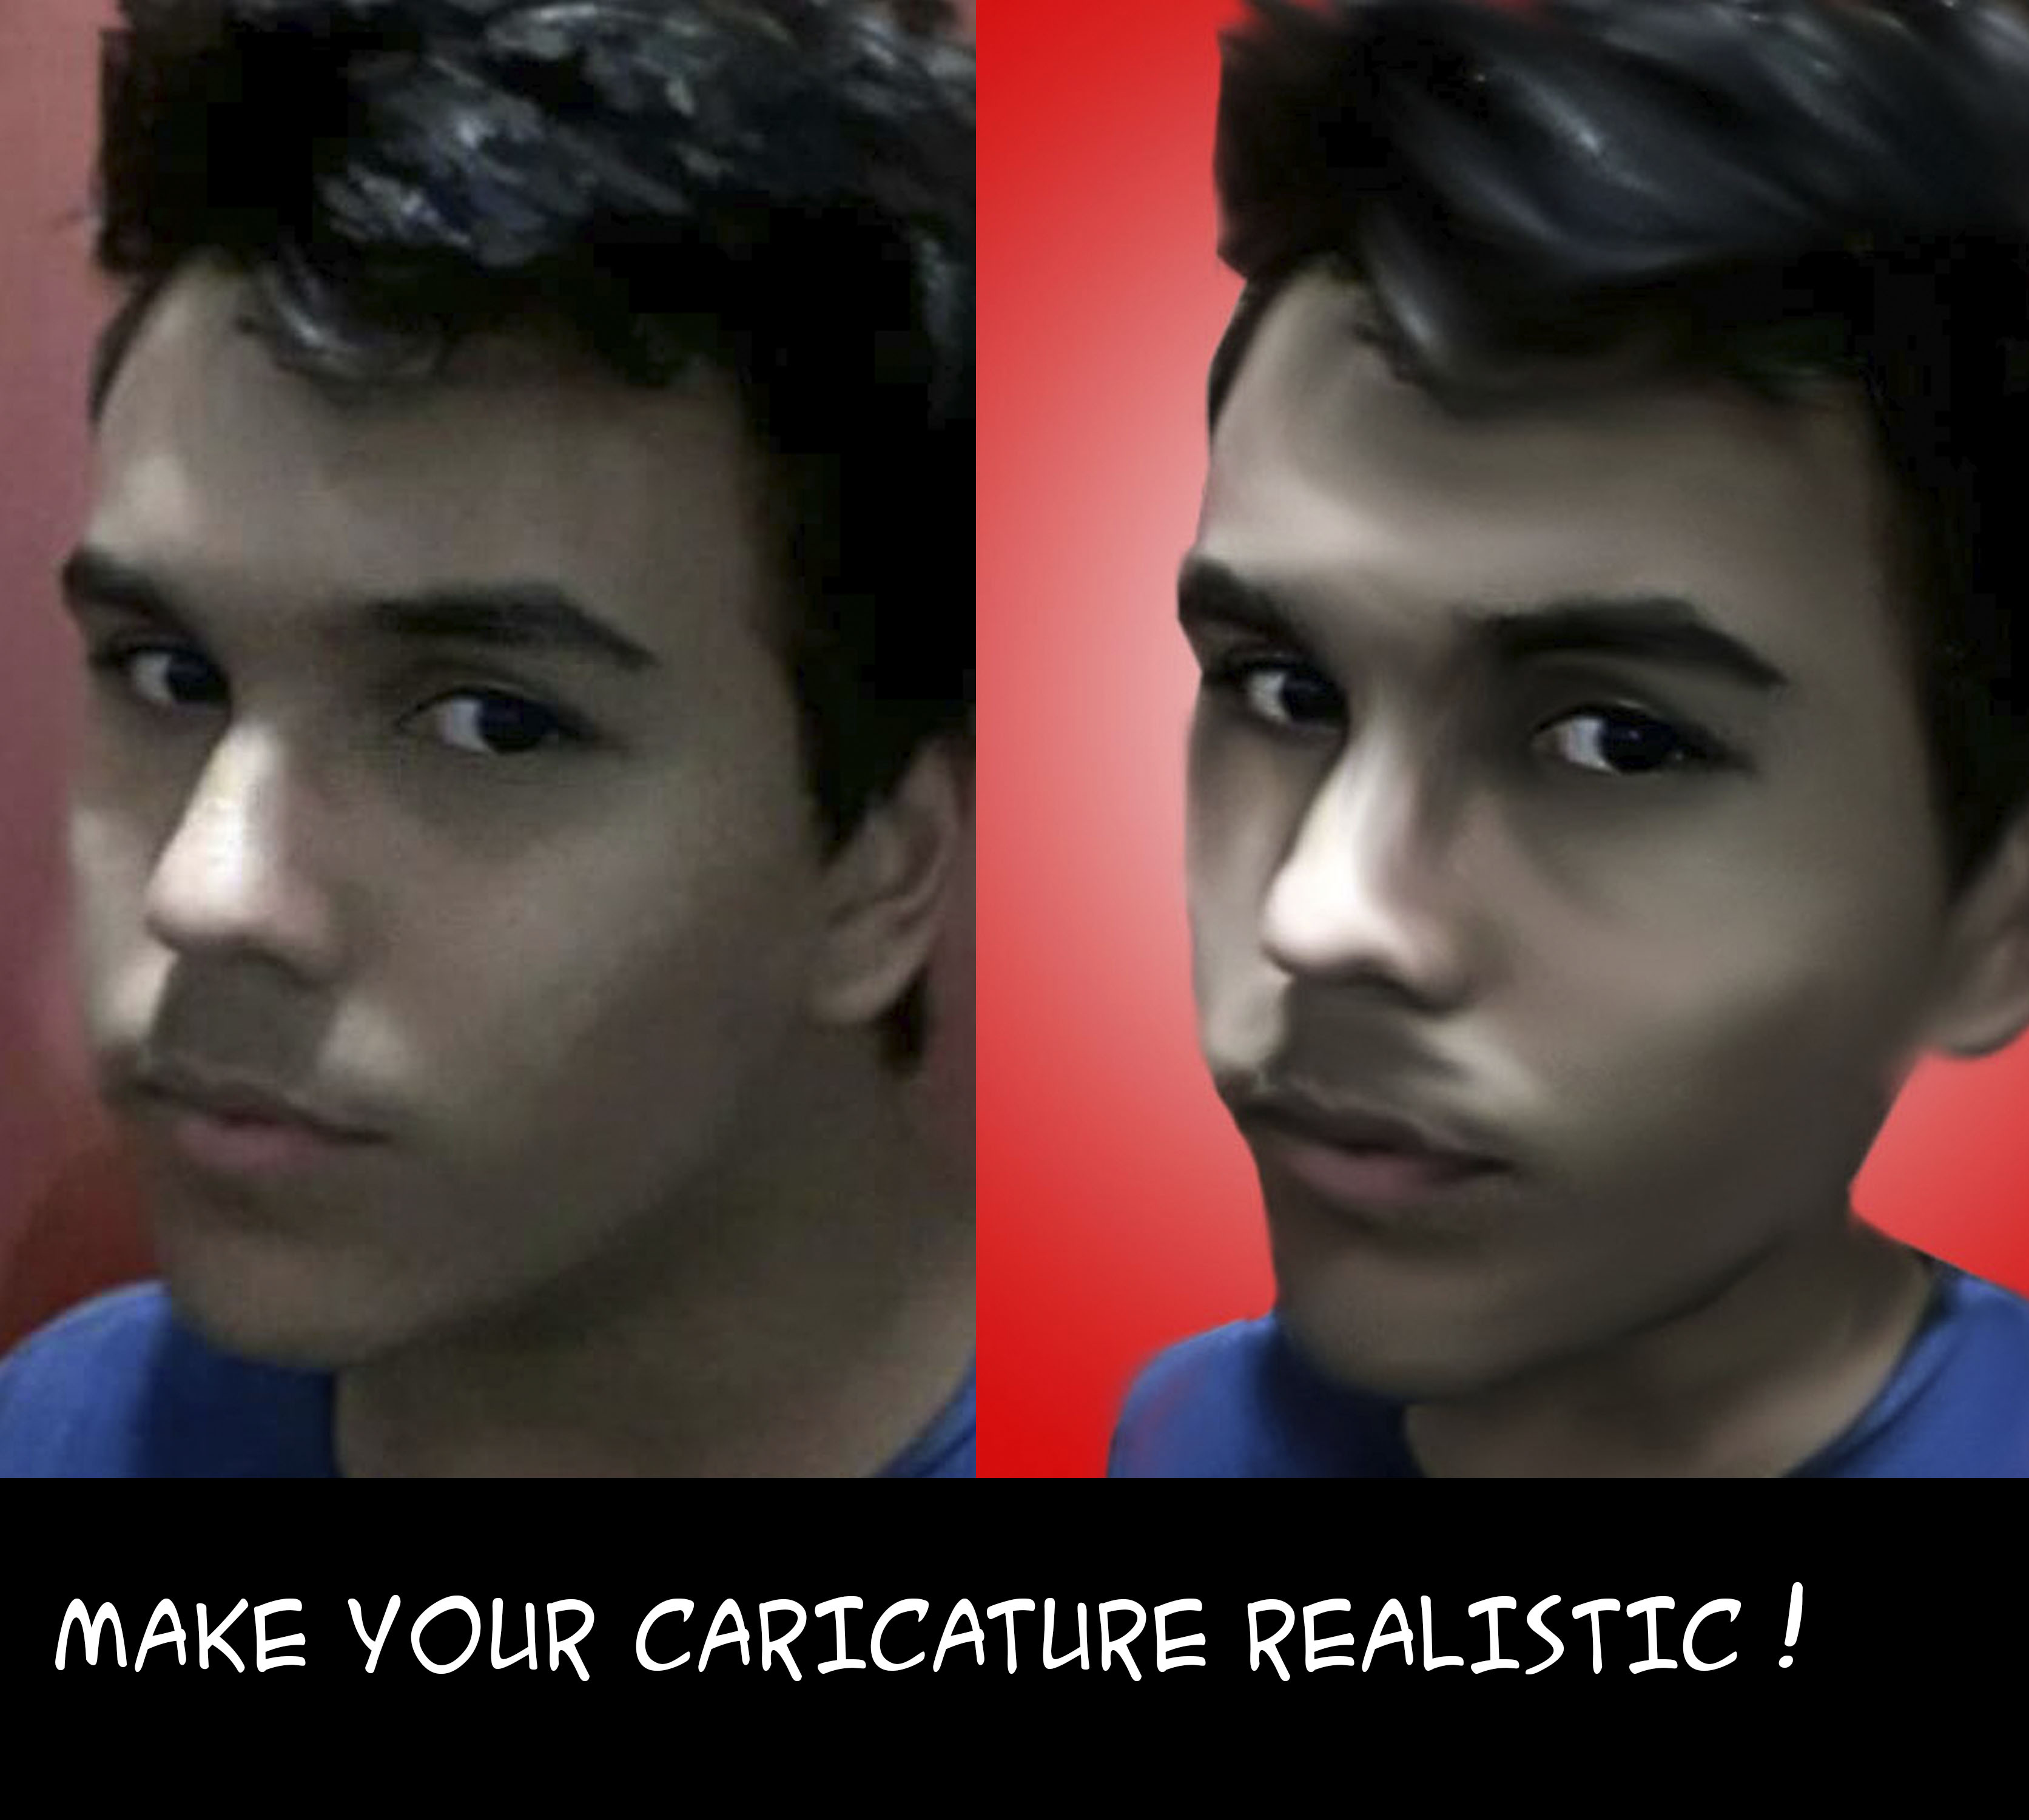 turn your photo into a fun CARICATURE